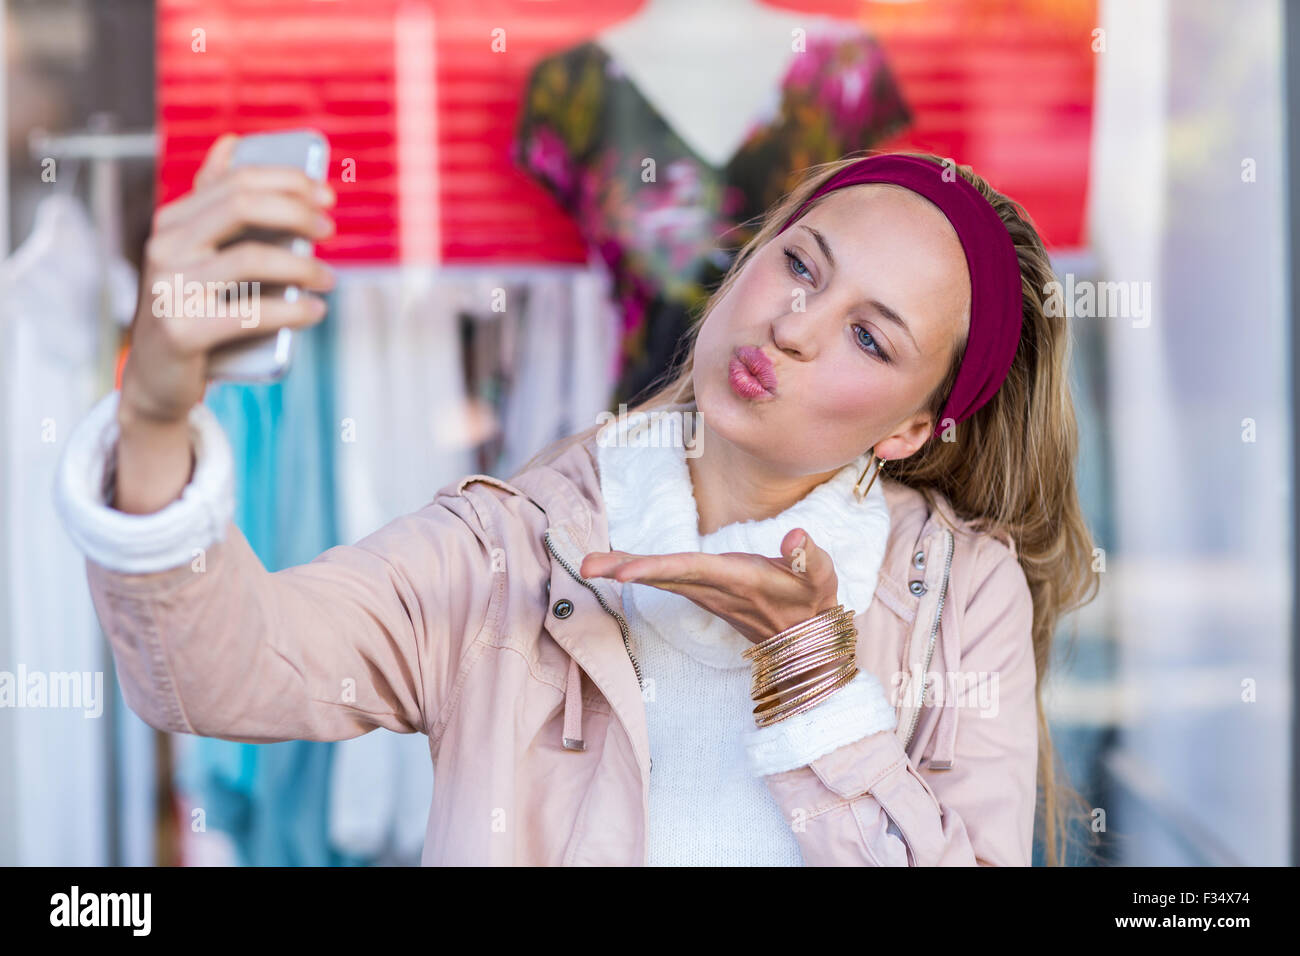 Girl Blowing Kiss Stock Images, Royalty-Free Images &- Vectors ...